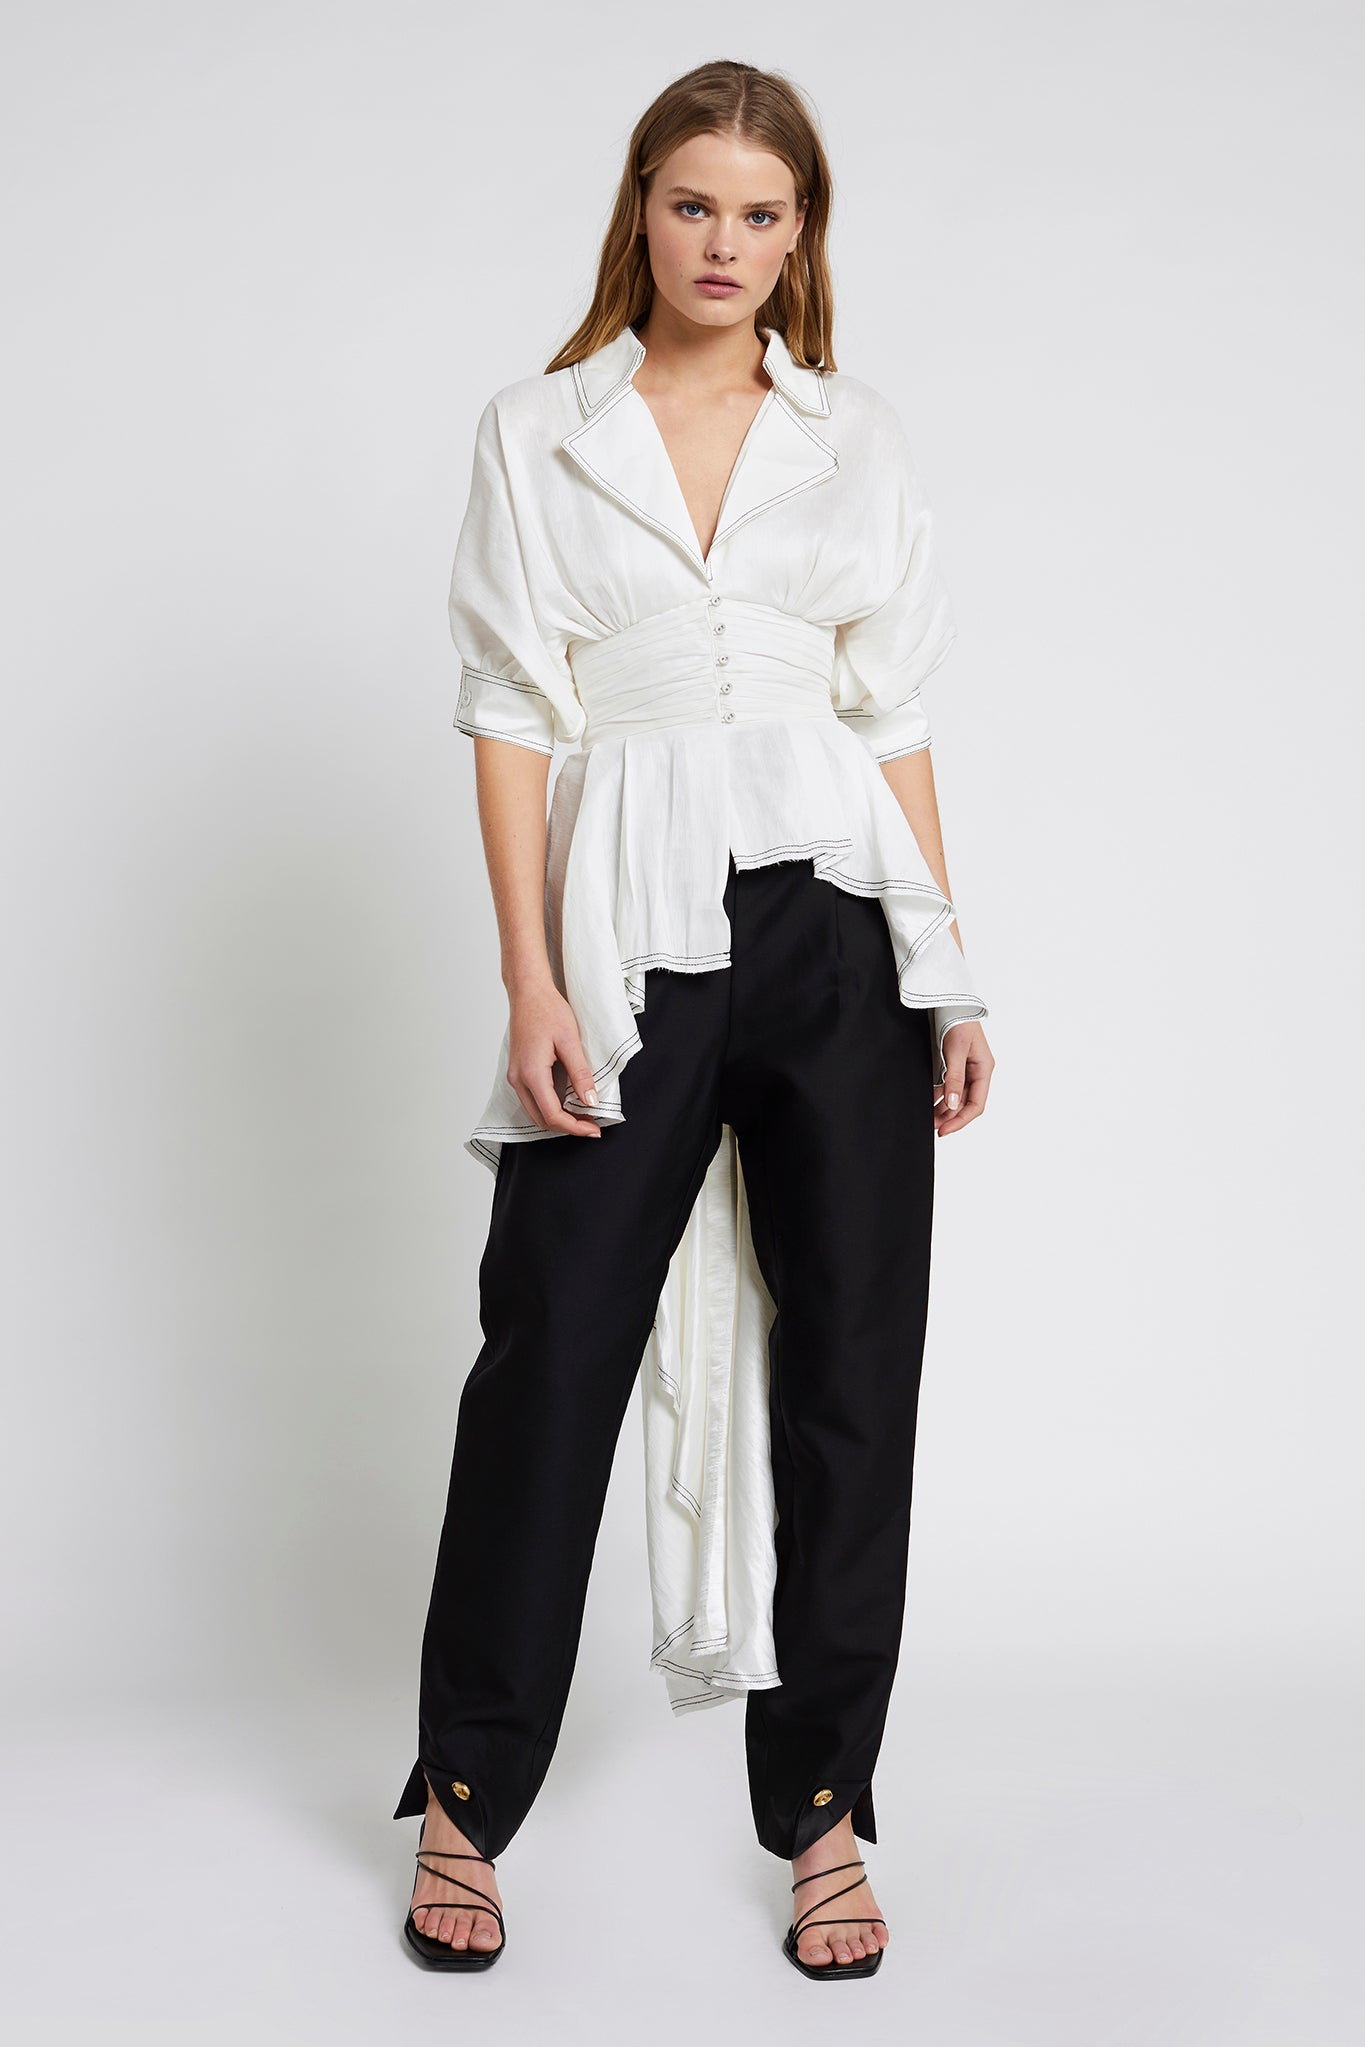 Whitehaven Blouse Outfit View